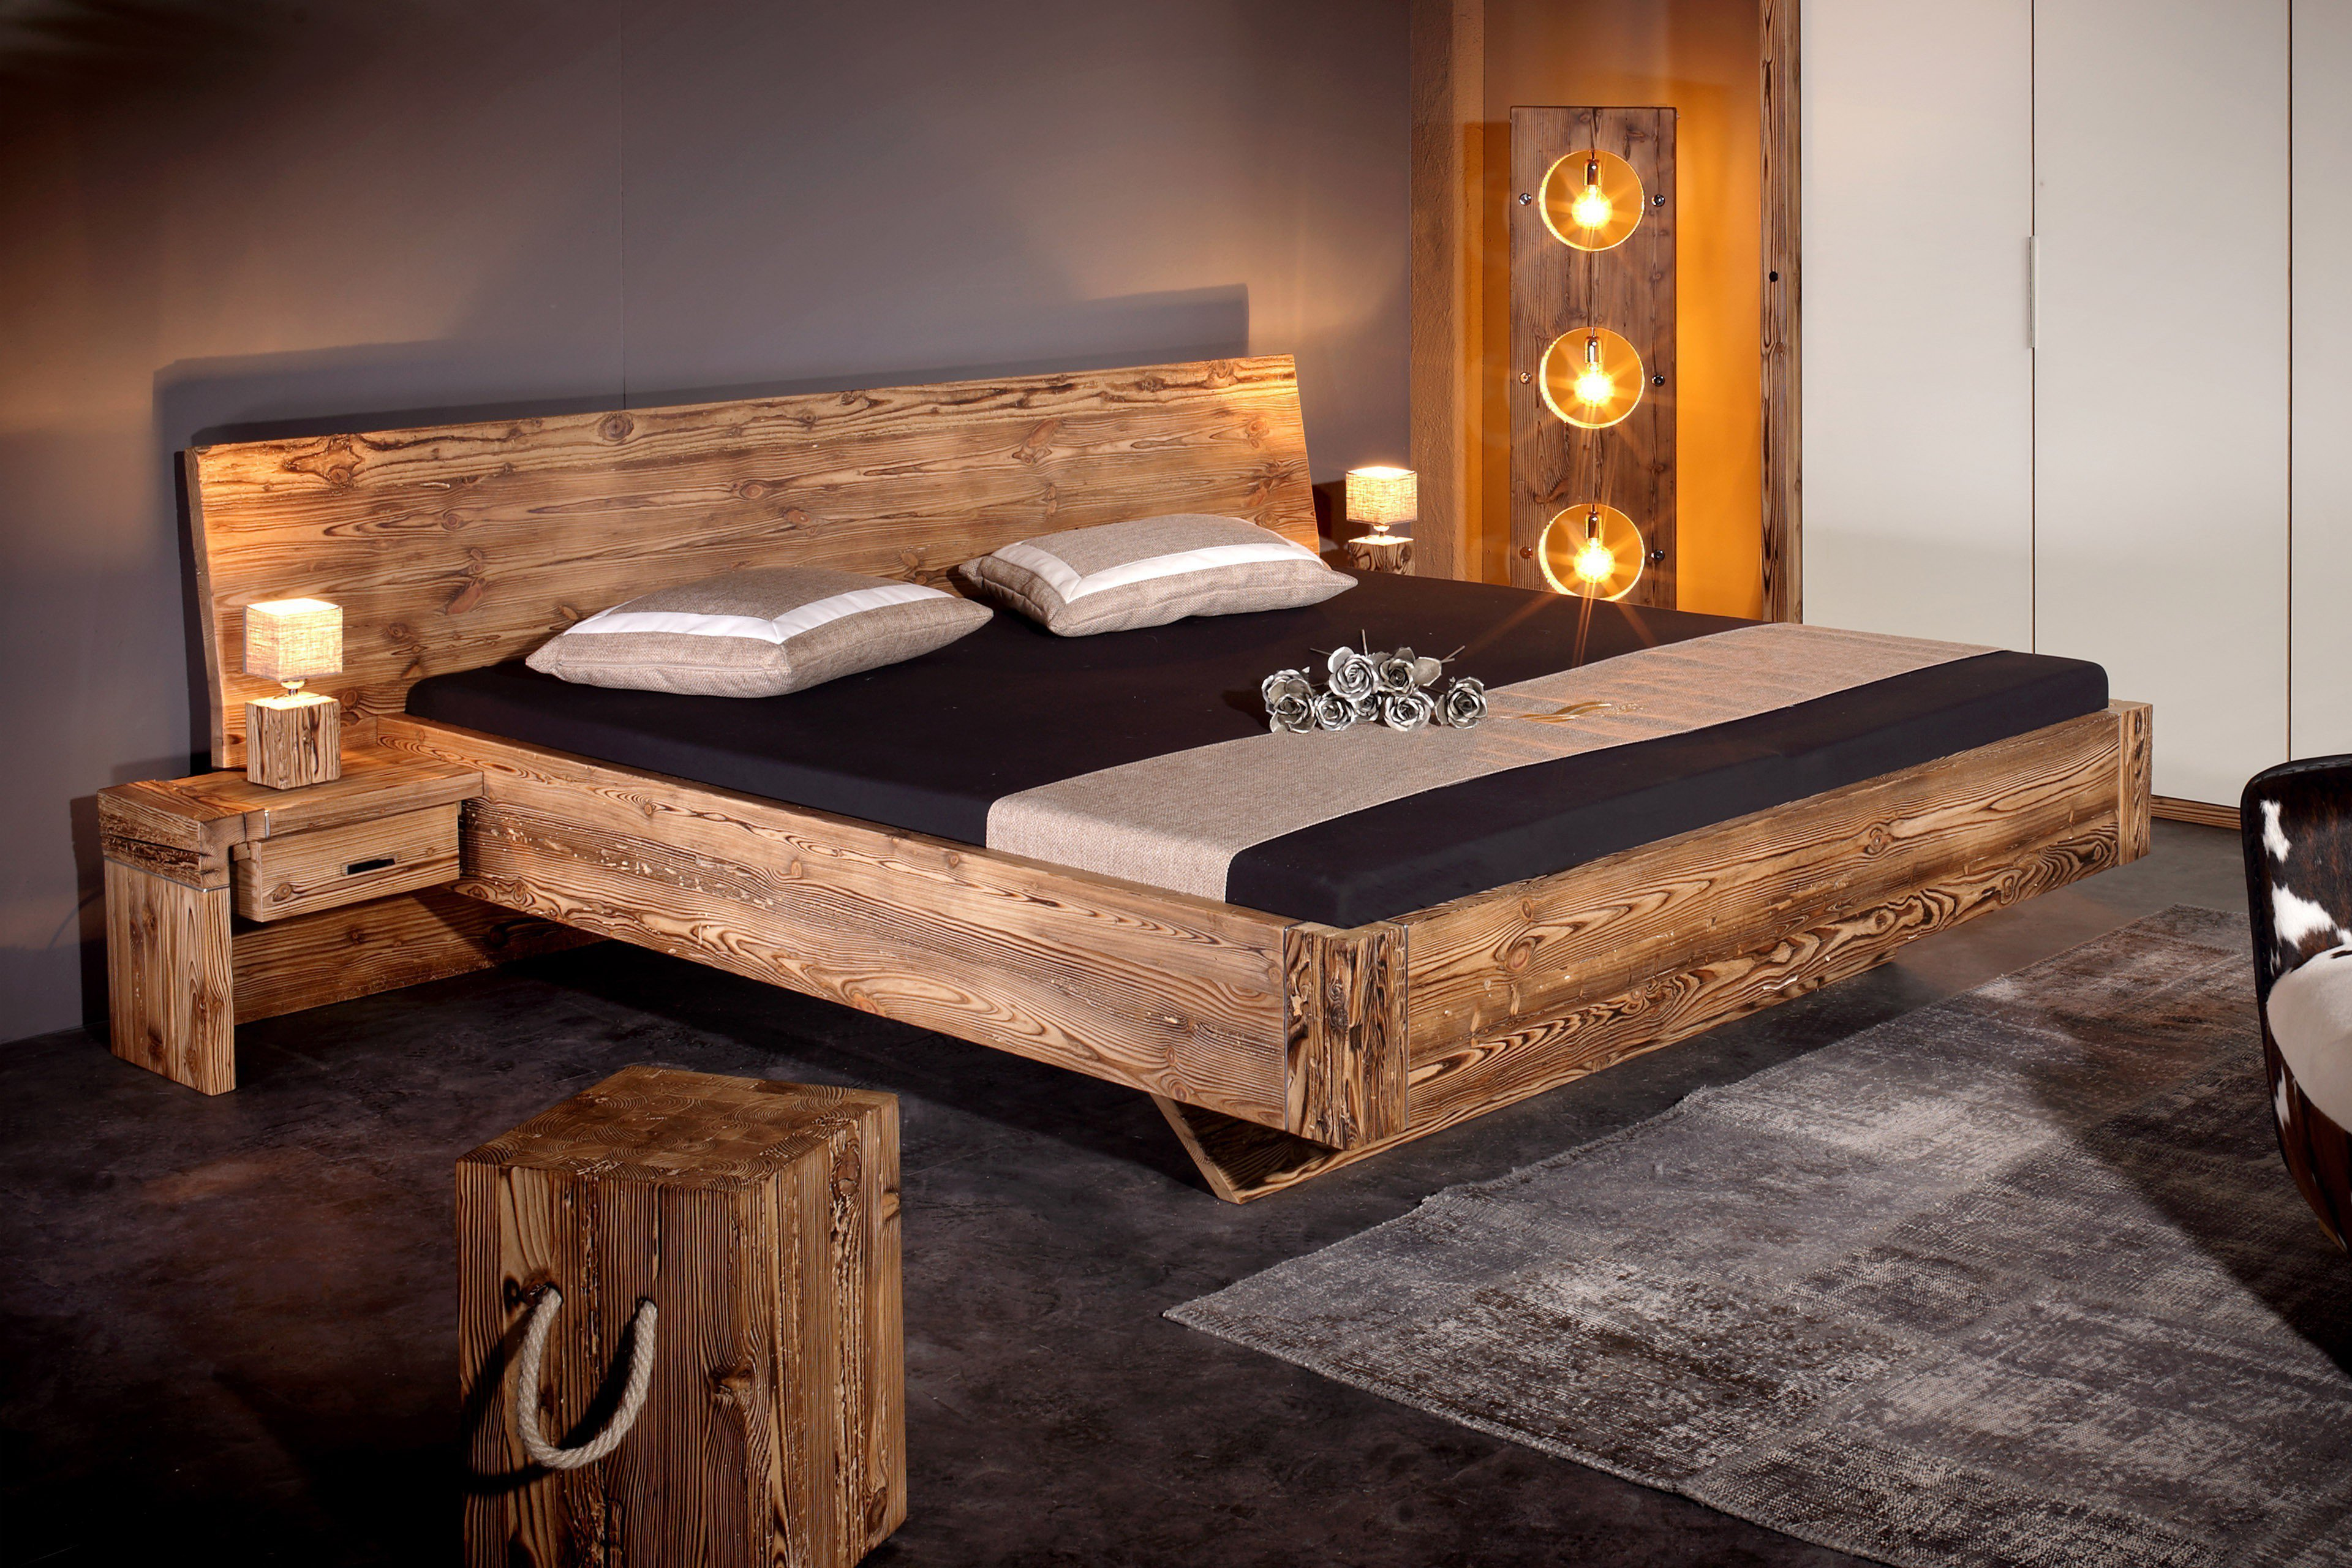 sprenger m bel schlafzimmer alpina tanne m bel letz ihr online shop. Black Bedroom Furniture Sets. Home Design Ideas